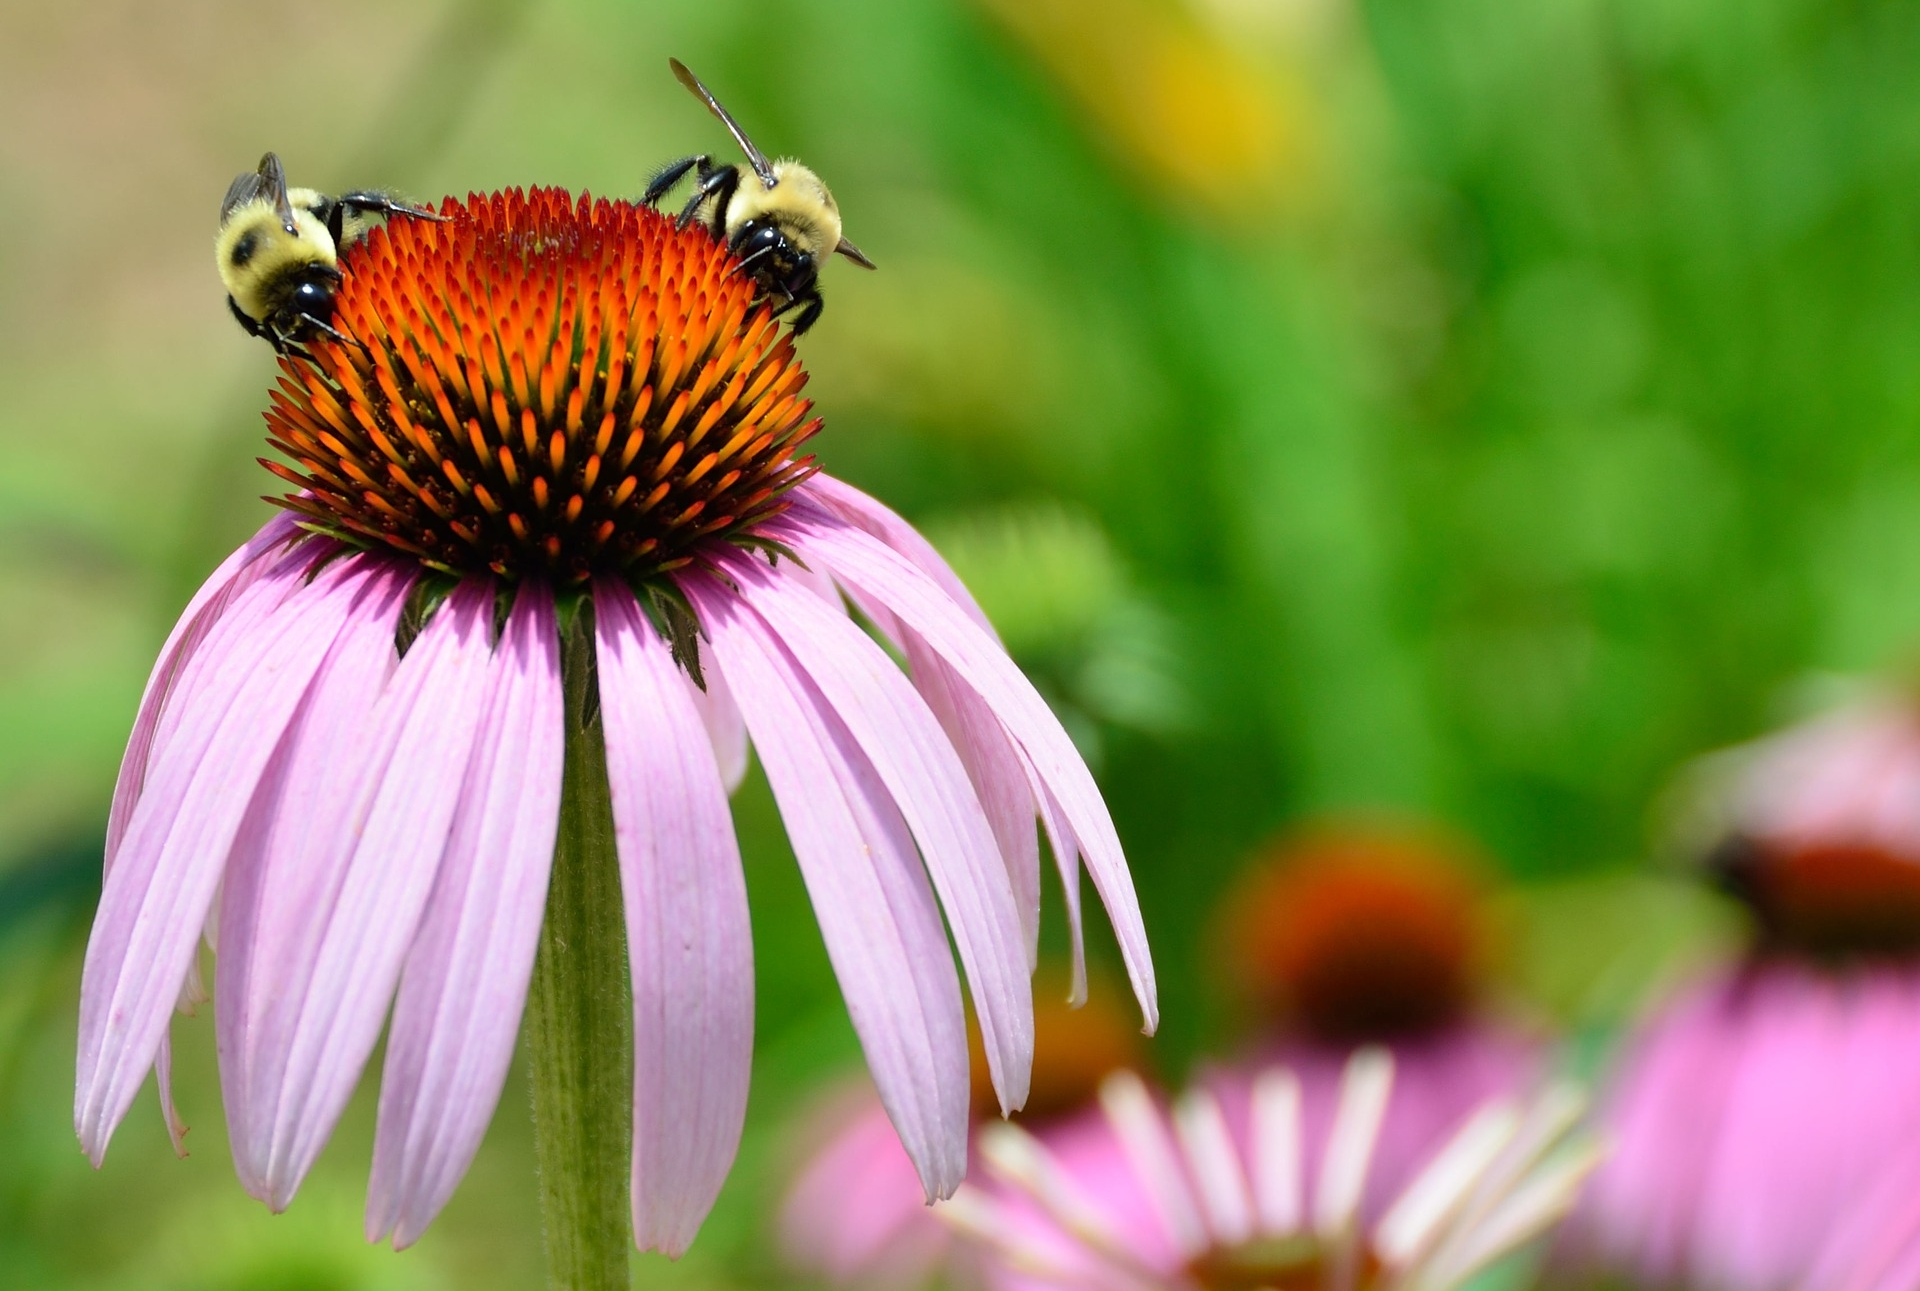 Bumblebees collecting pollen and nectar from an aster